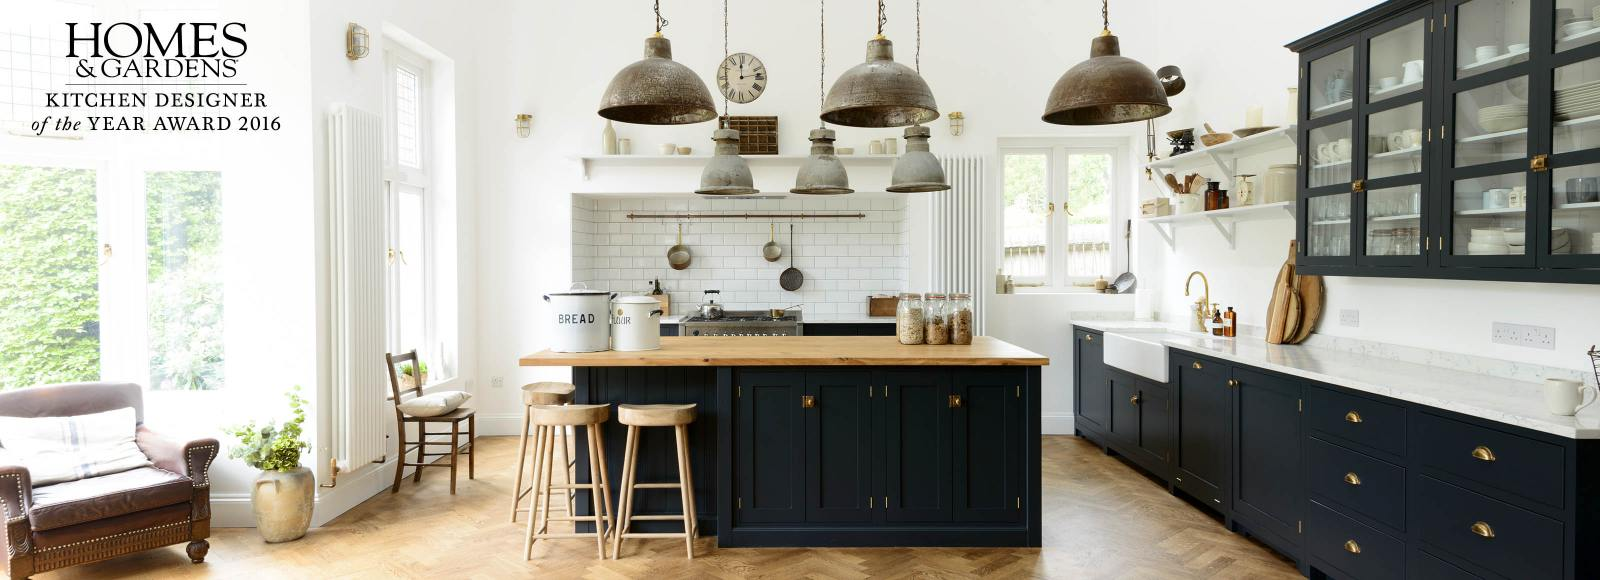 DeVOL Kitchens Simple Furniture Beautifully Made